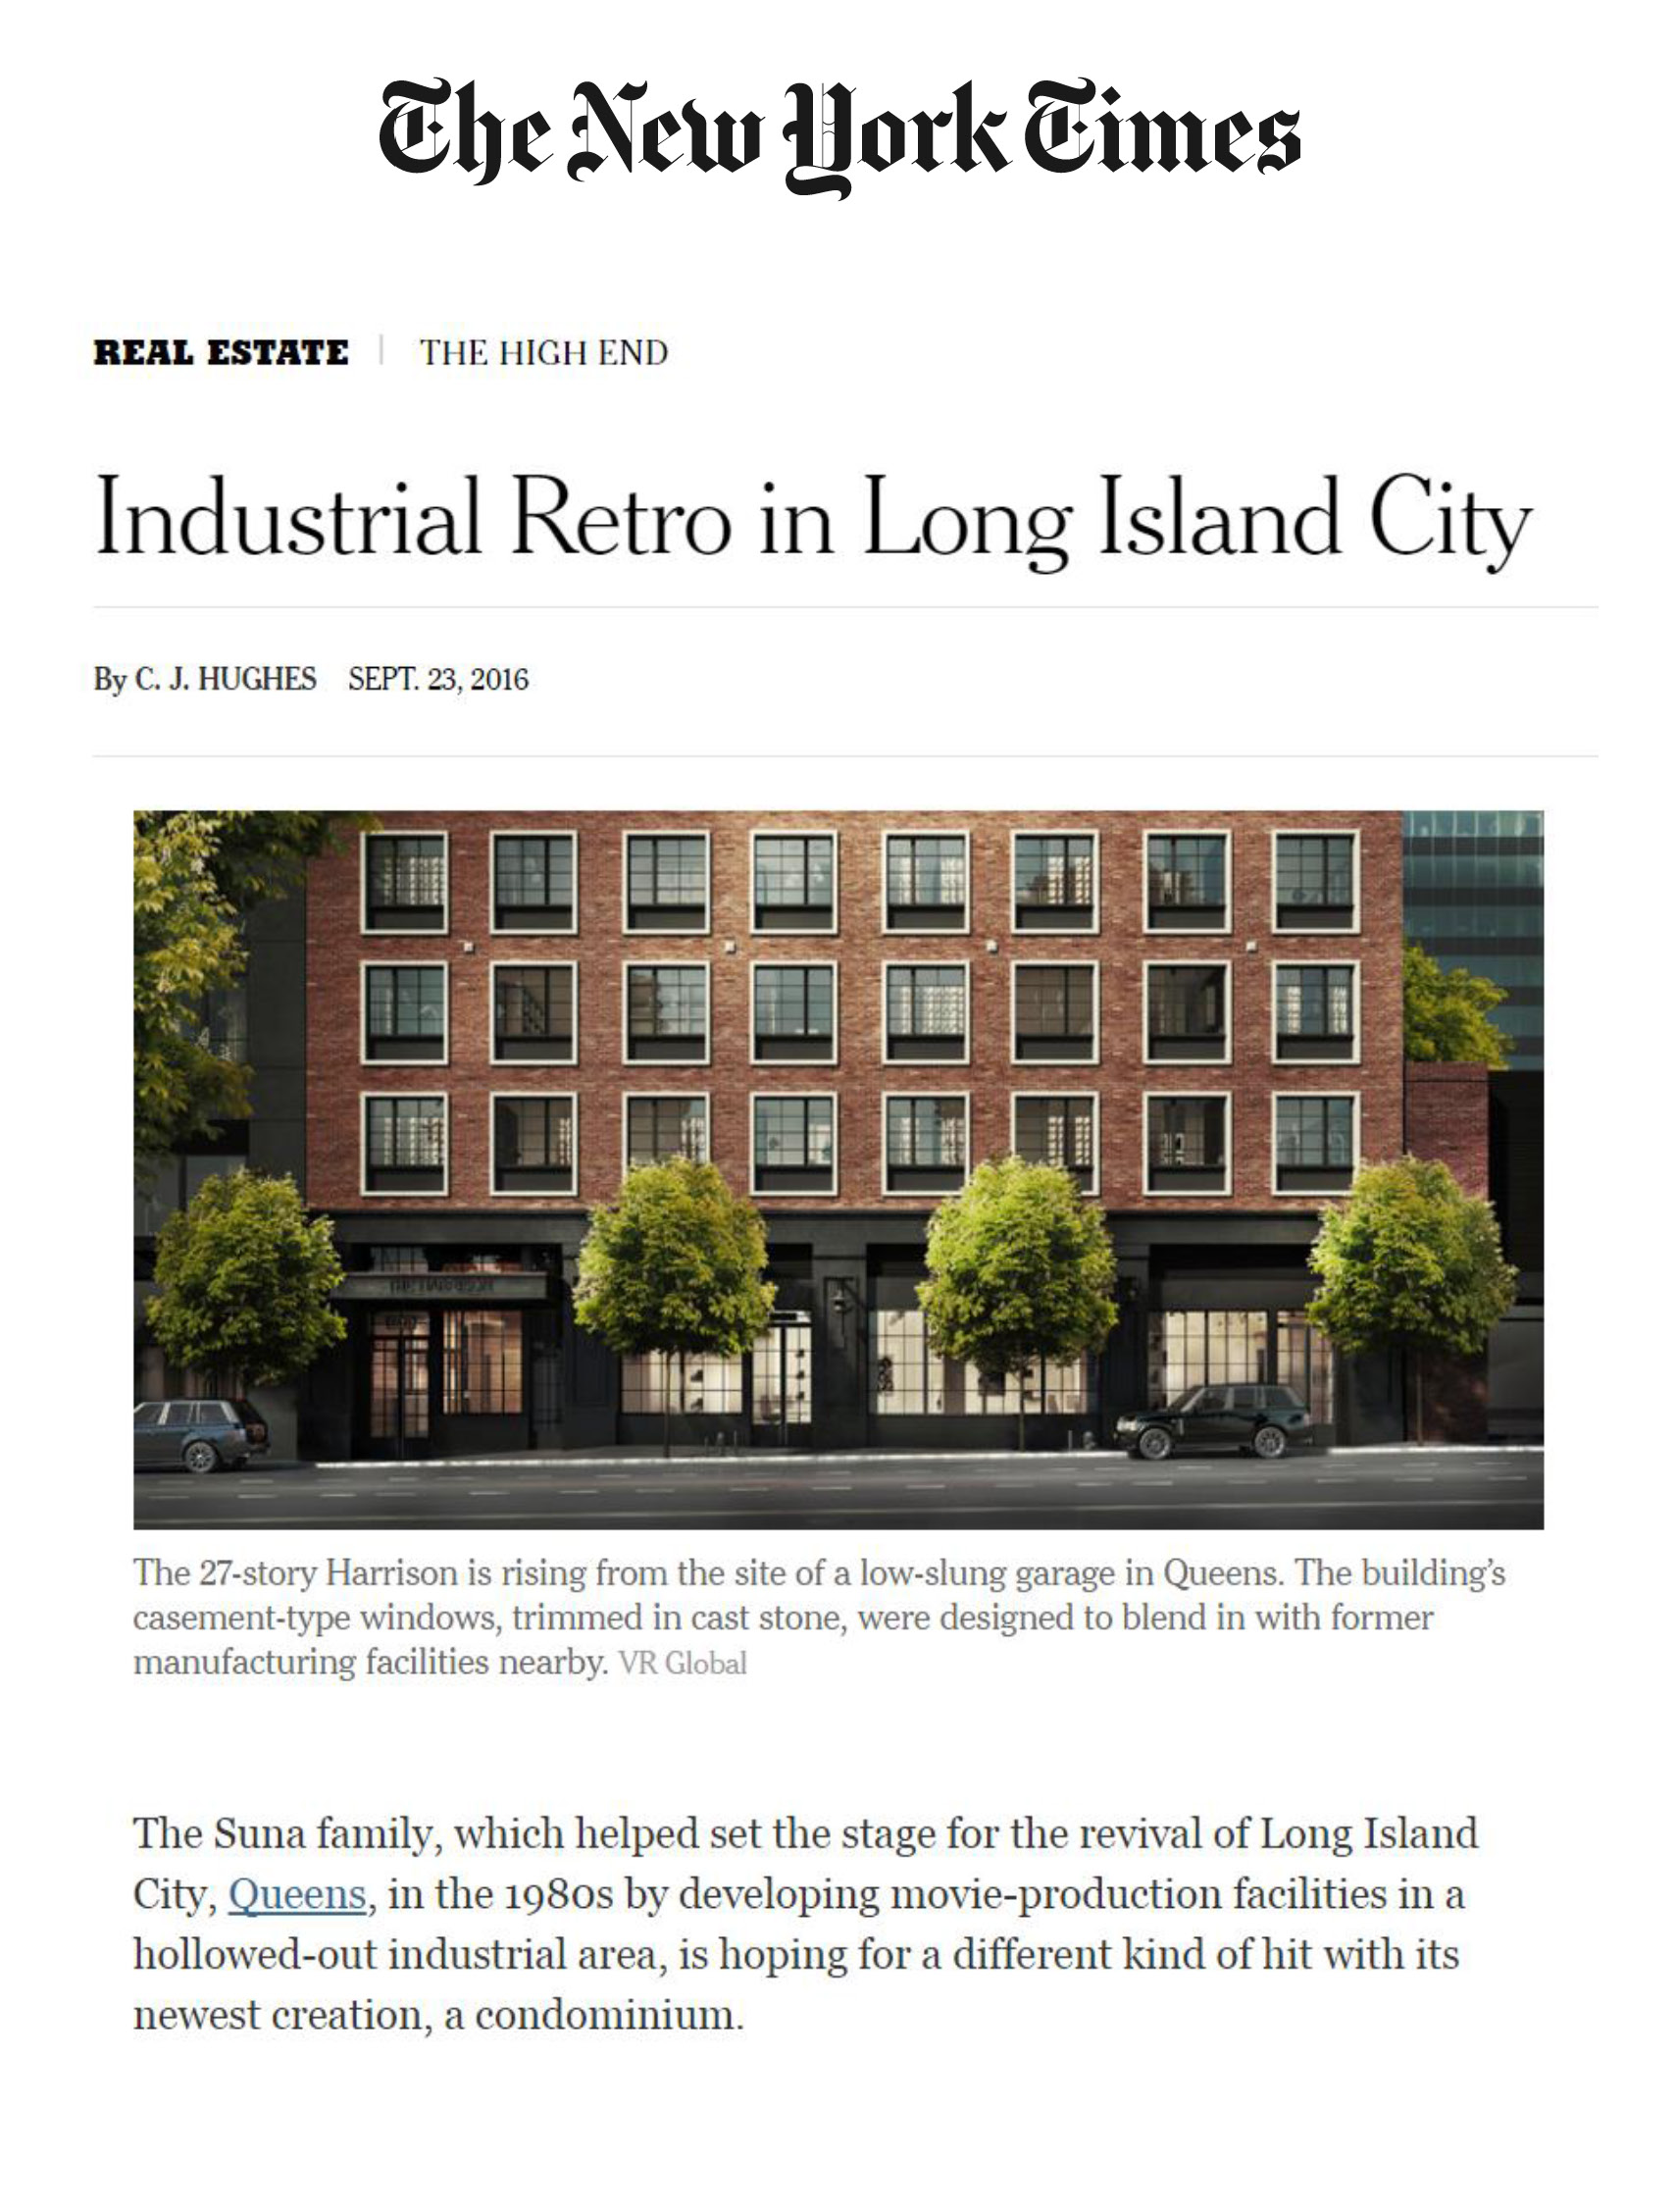 new-york-times-industrial-retro-in-long-island-city-9-23-16-2_page_1